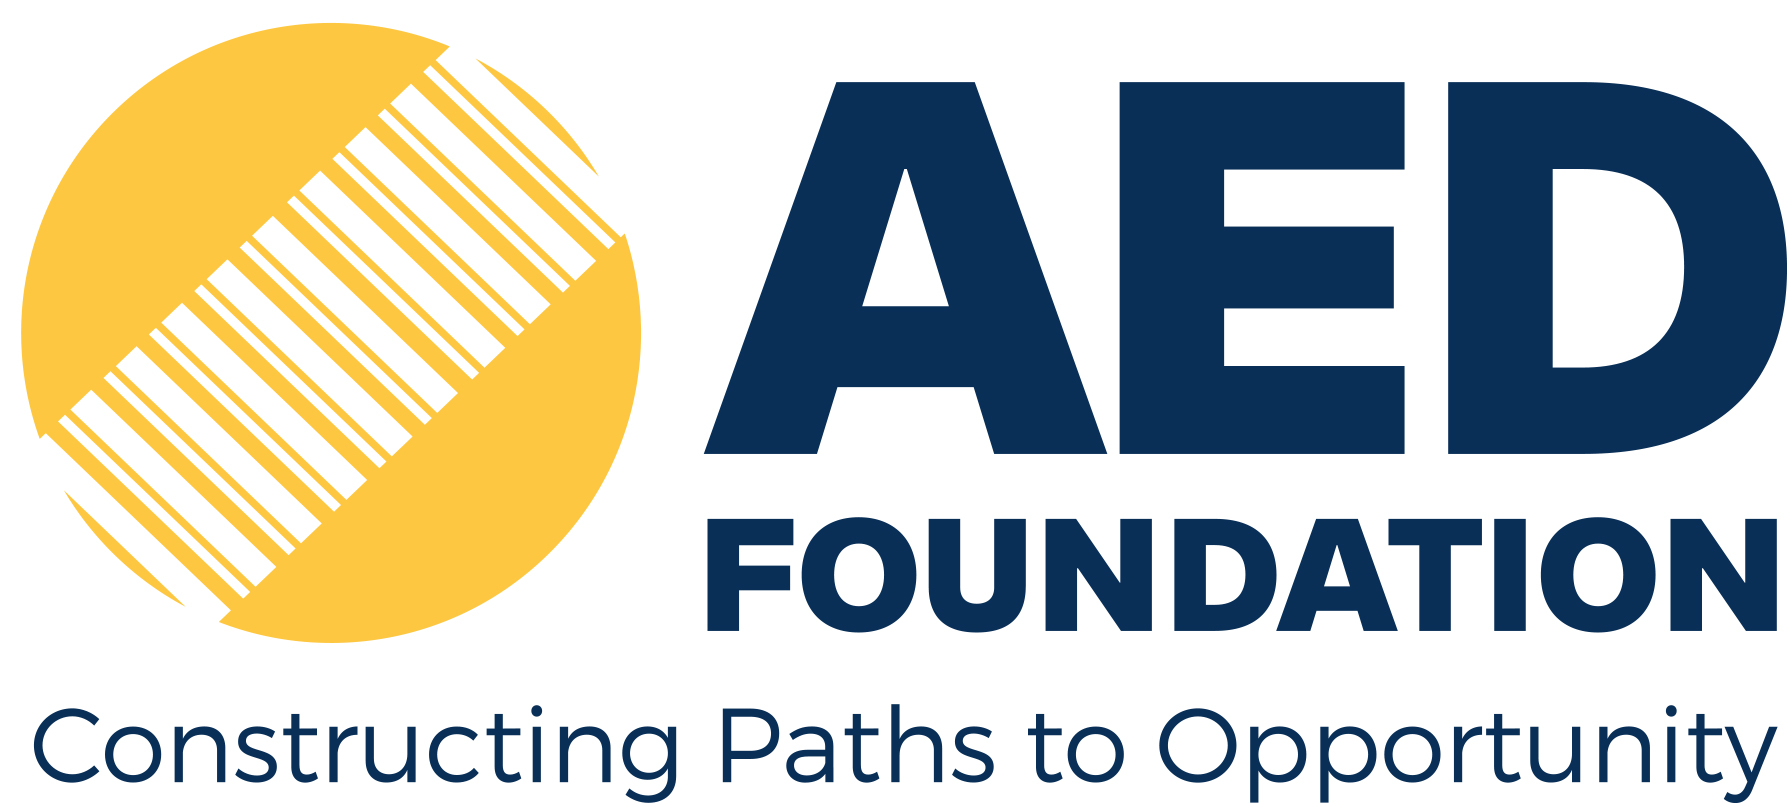 aed_foundation_logo_2color_300.jpg